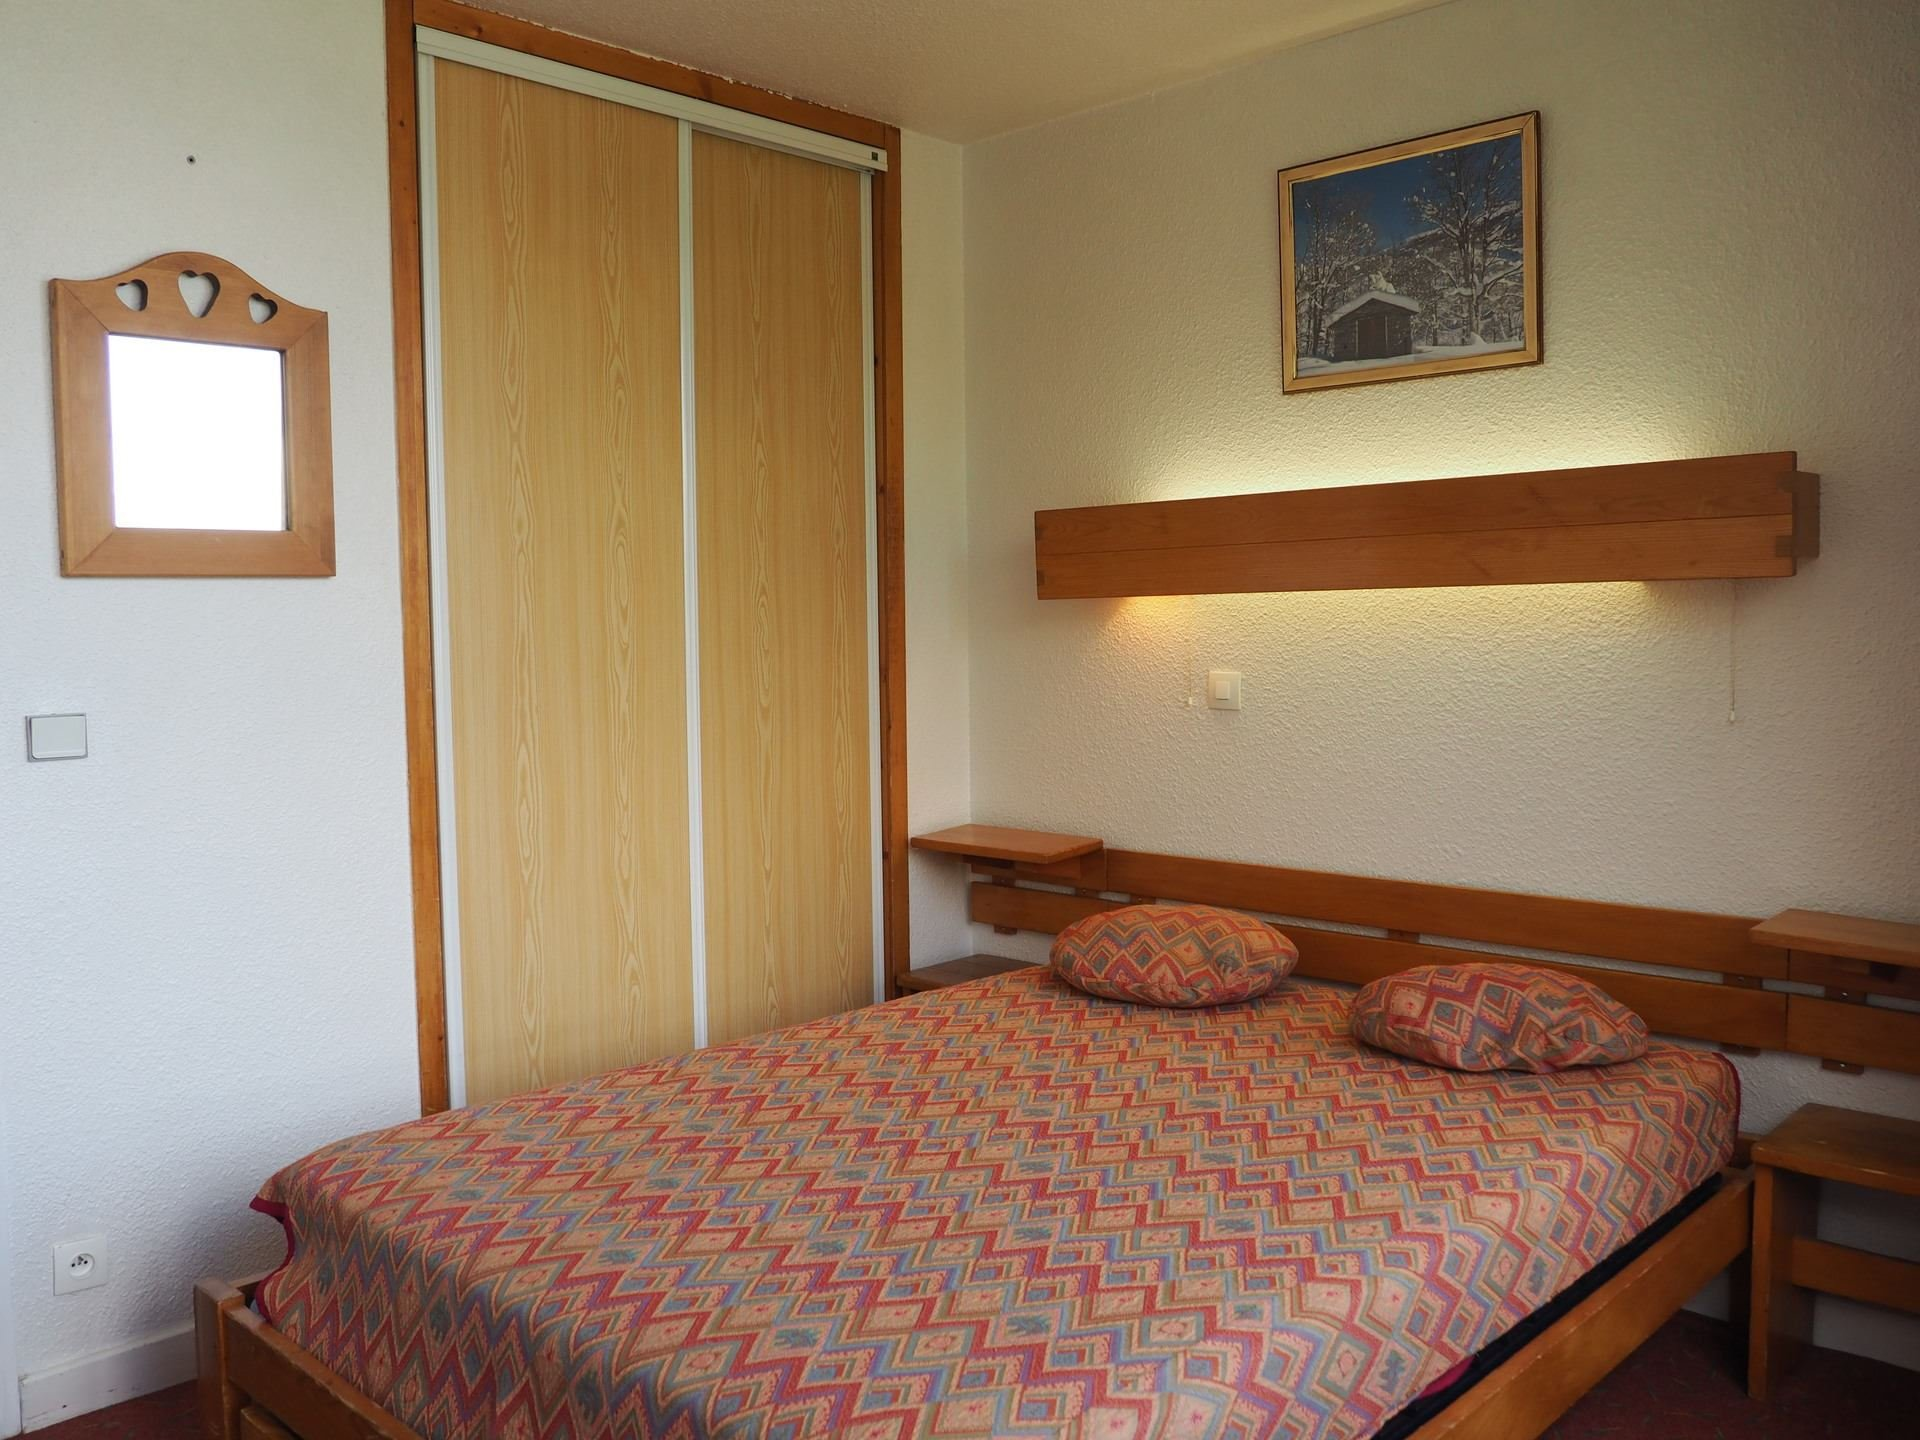 2 Rooms 4 Pers ski-in ski-out / CHAVIERE 728